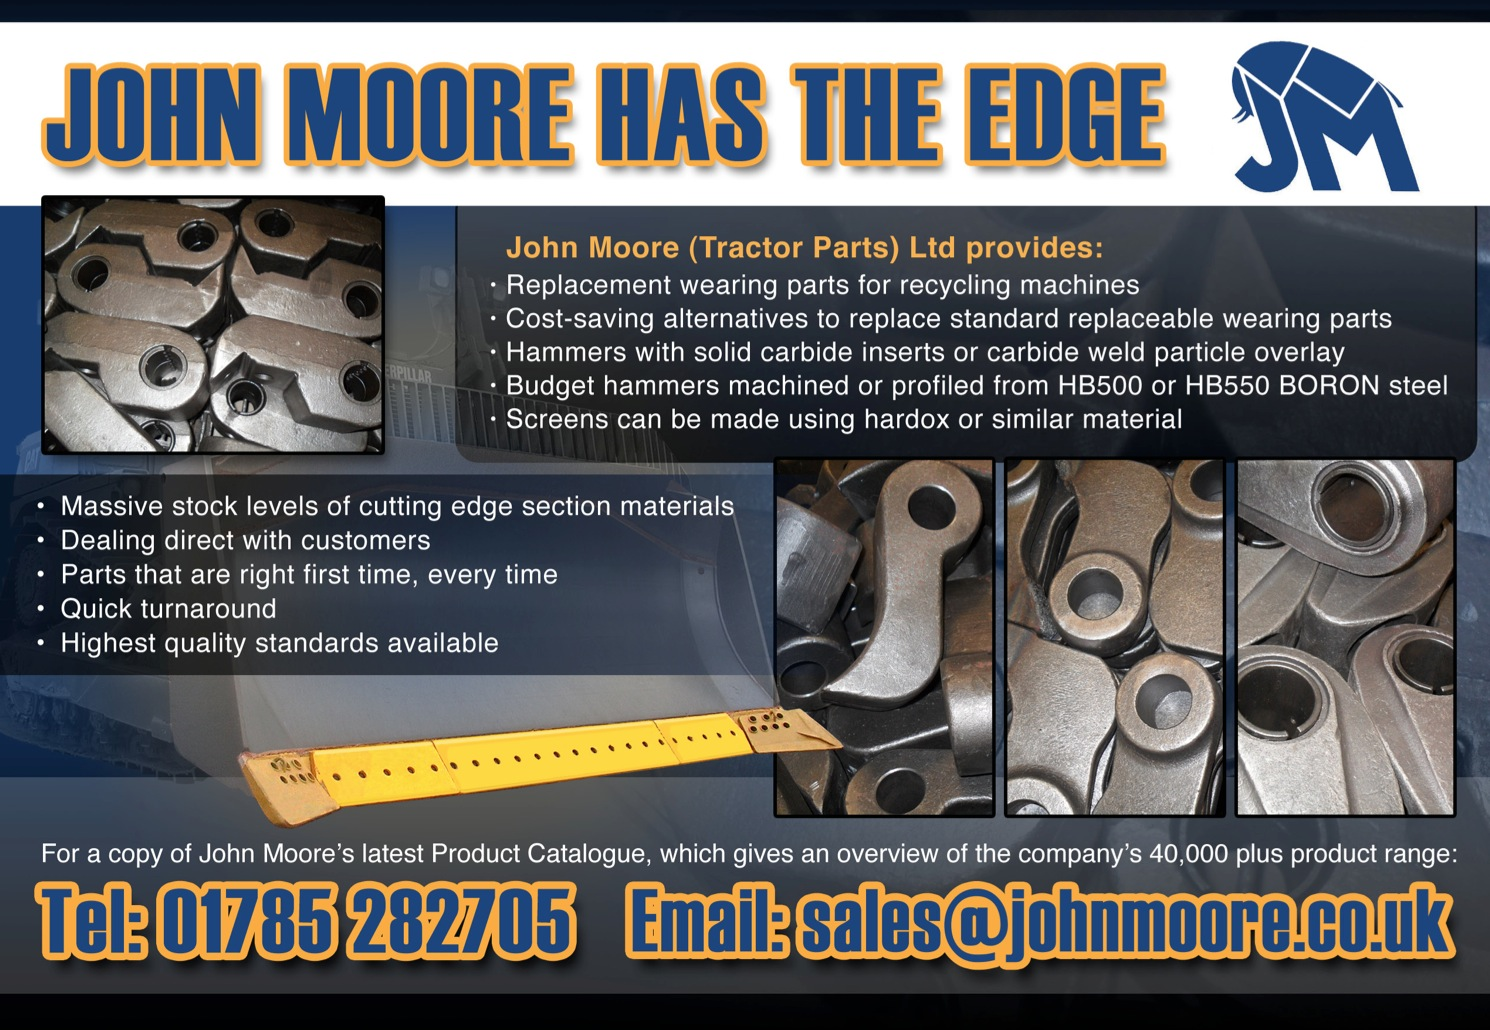 methods of replacing the wear parts Routine maintenance for size reduction equipment posted october 27, 2016 by cpotratz replacing hammer mill wear parts any machine that has moving or rotating parts requires routine maintenance to ensure that it performs at optimal capacity.